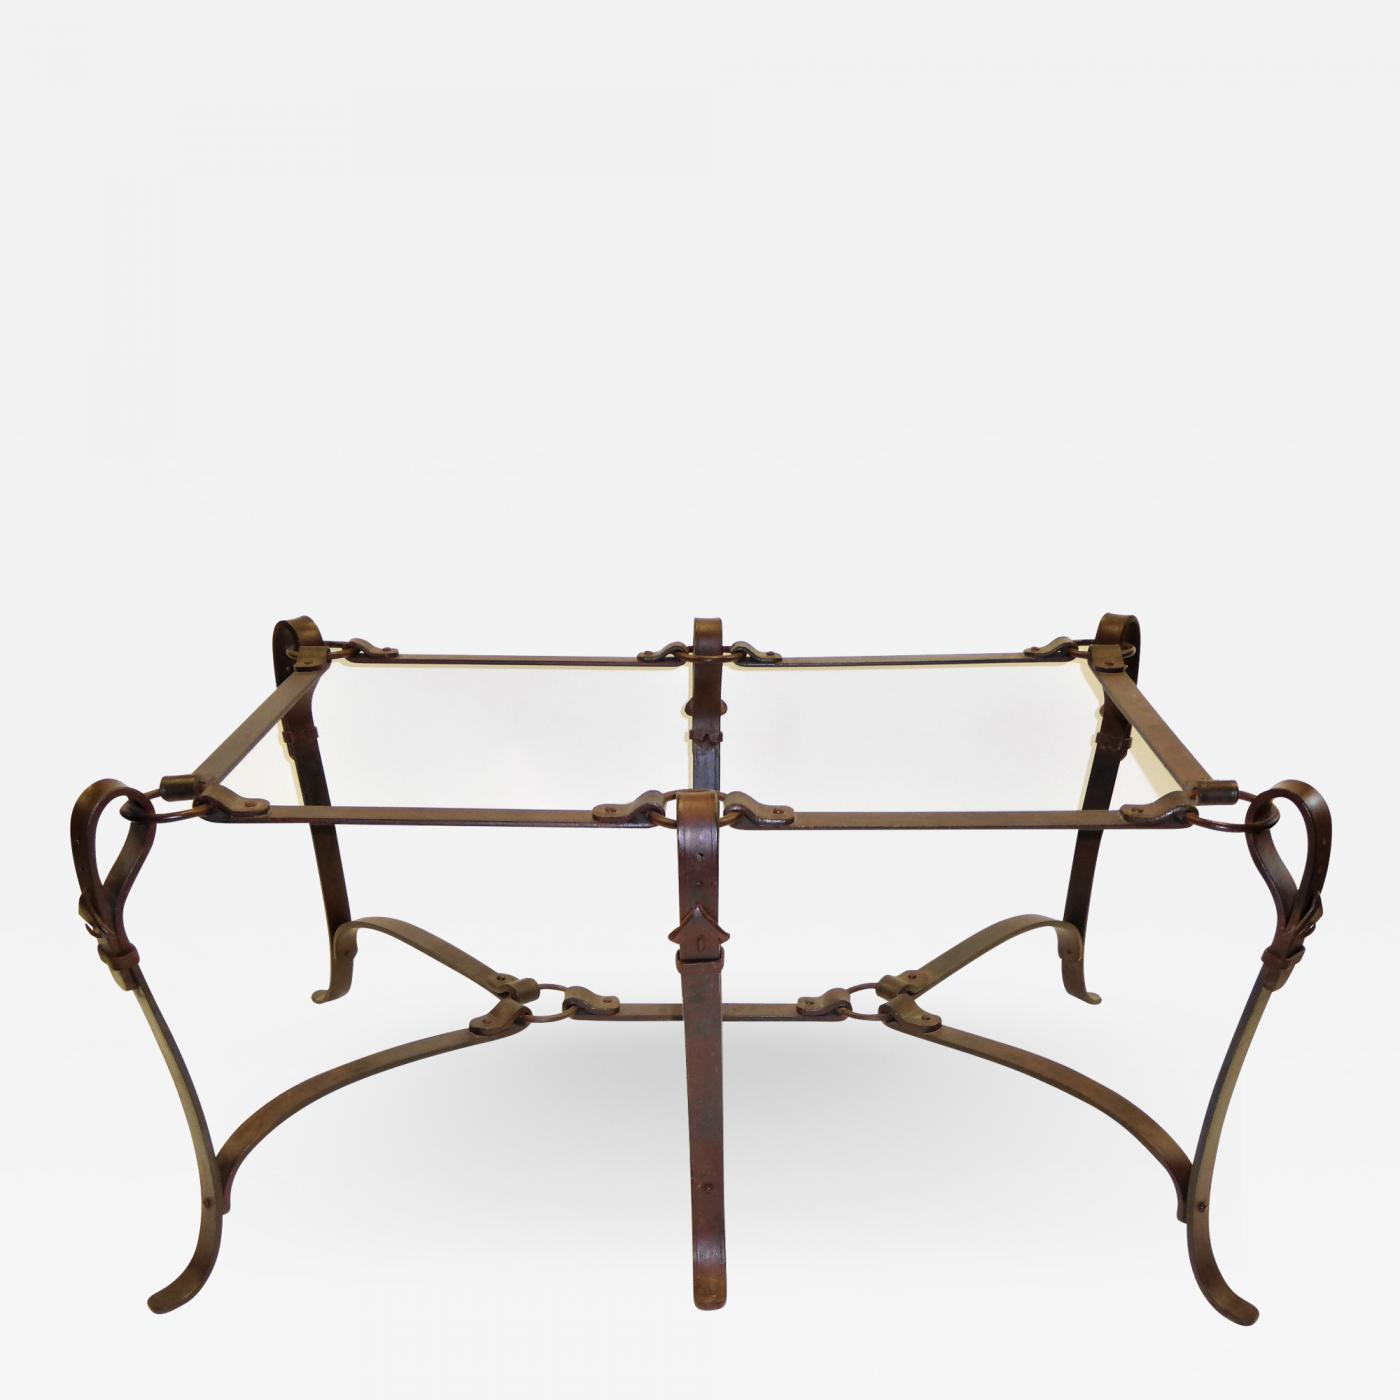 Hermès Elegant Hermes Style Faux Leather Wrought Iron Coffee Table - Hermes coffee table